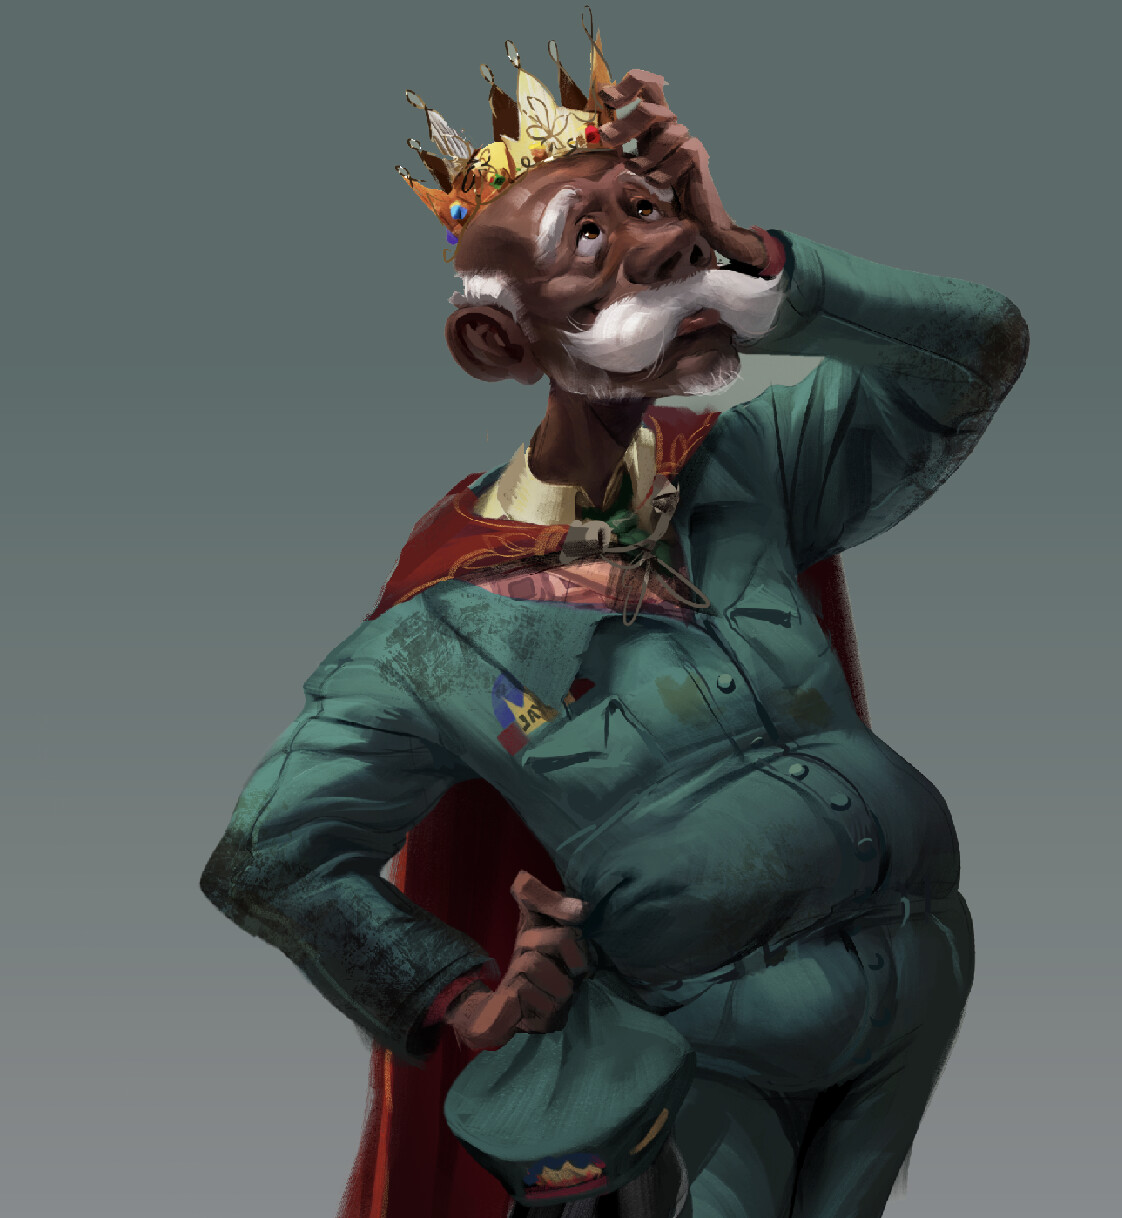 The King of the Elves - Character Design